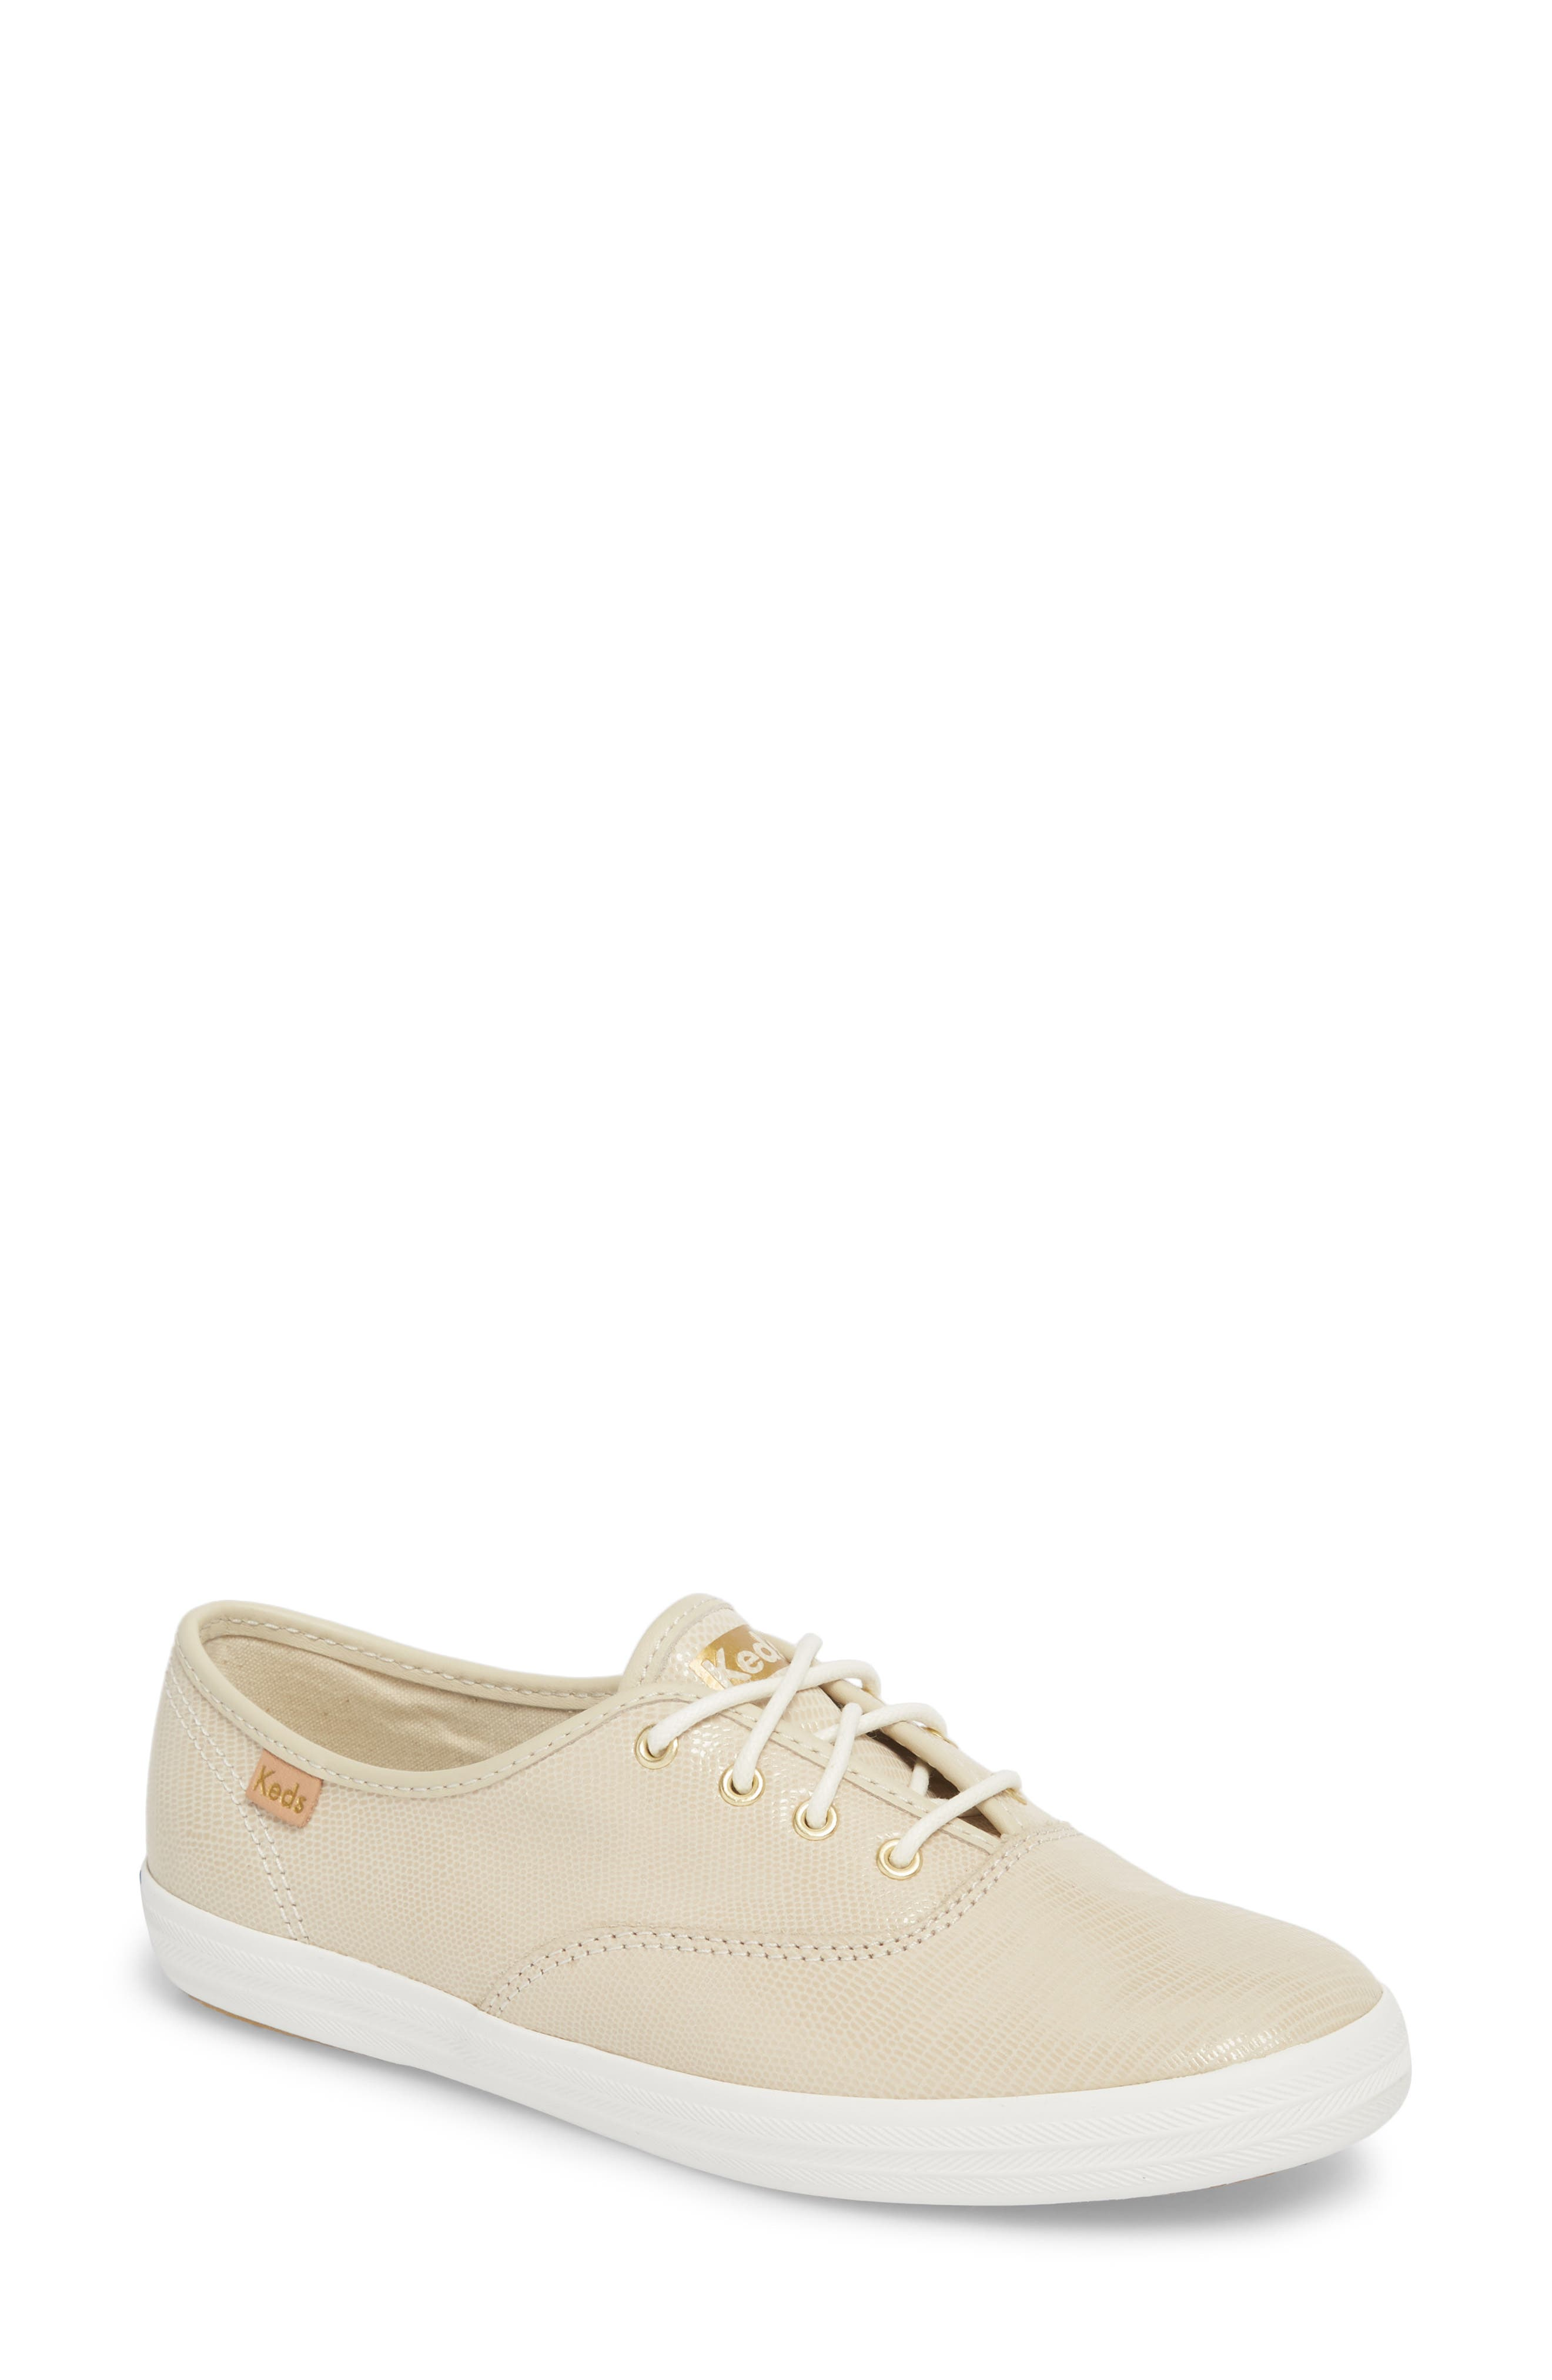 Champion Pretty Leather Sneaker,                         Main,                         color, Ivory